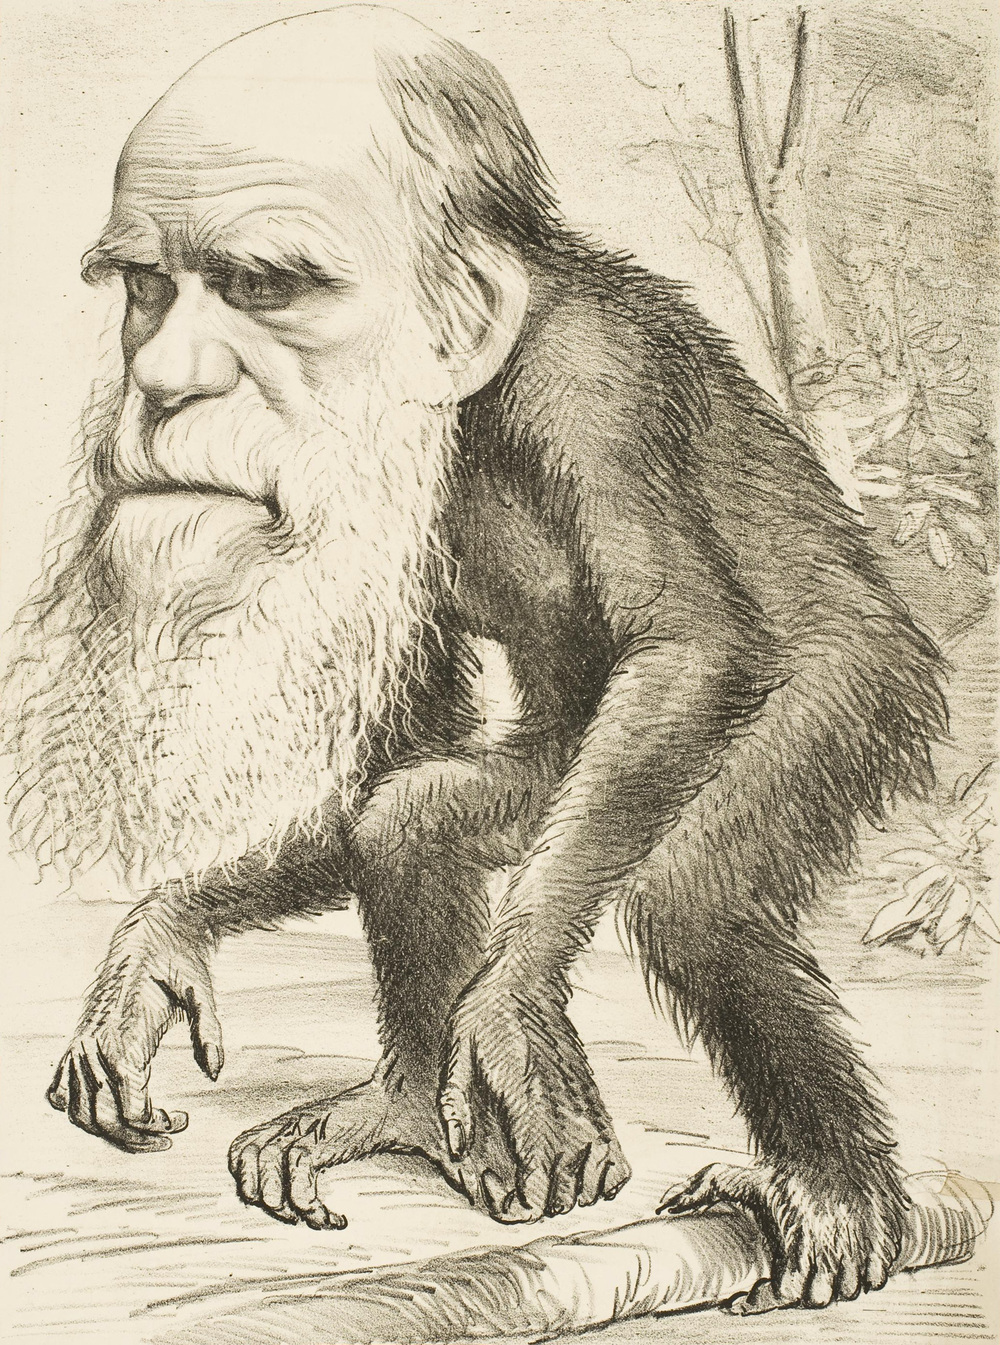 I wonder what Charles Darwin would have thought of this sketch!